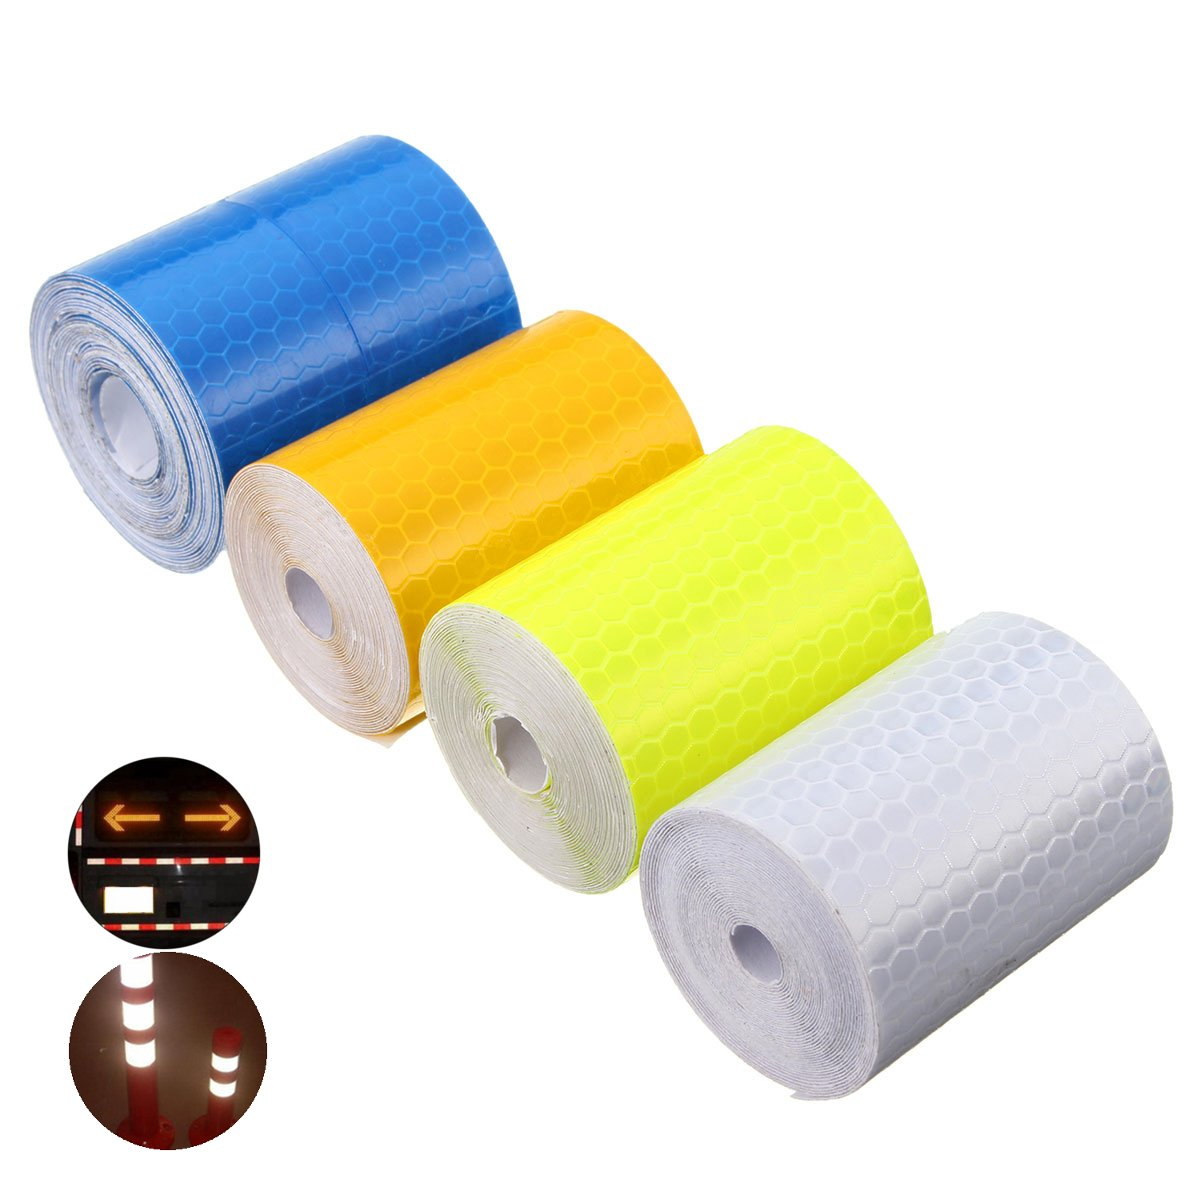 Exterior Accessories - 5cm X 300cm Reflective Safety Warning Conspicuity Tape Film Car Sticker - Reflective Tape For Clothing Vehicles Clothes Yellow Conspicuity Waterproof White - 2 Inch - 1PCs